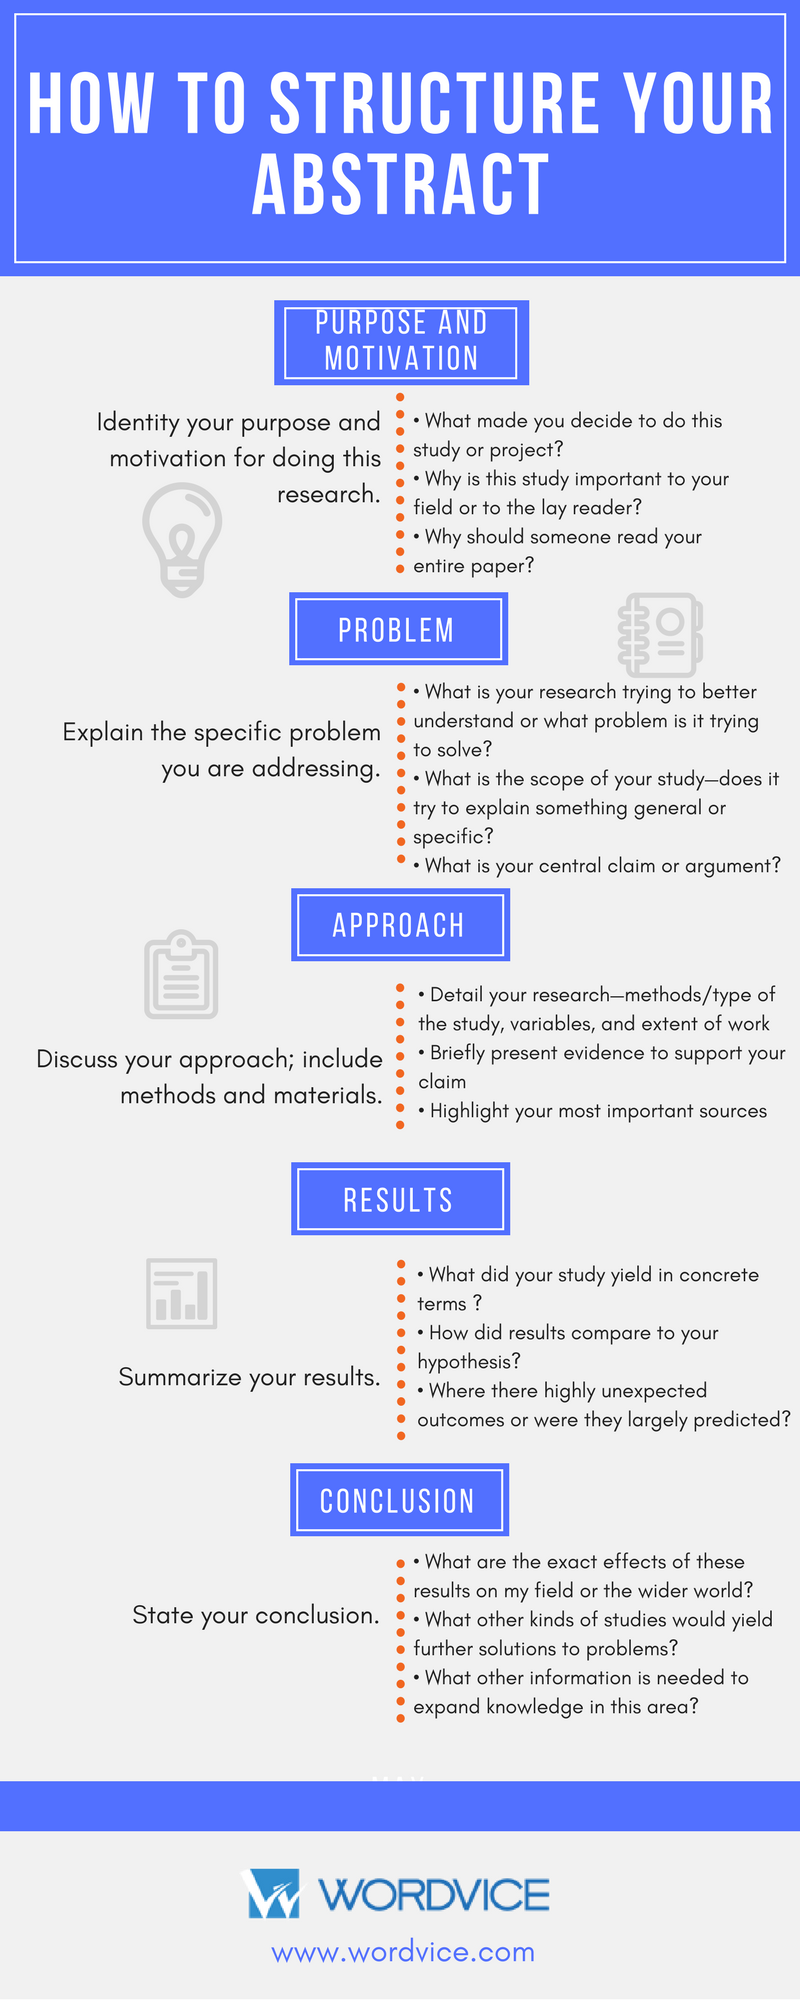 014 How To Structure Your Abstract1 Research Paper Marvelous Do Write A Good Review Make Ppt For Presentation Notecards Full